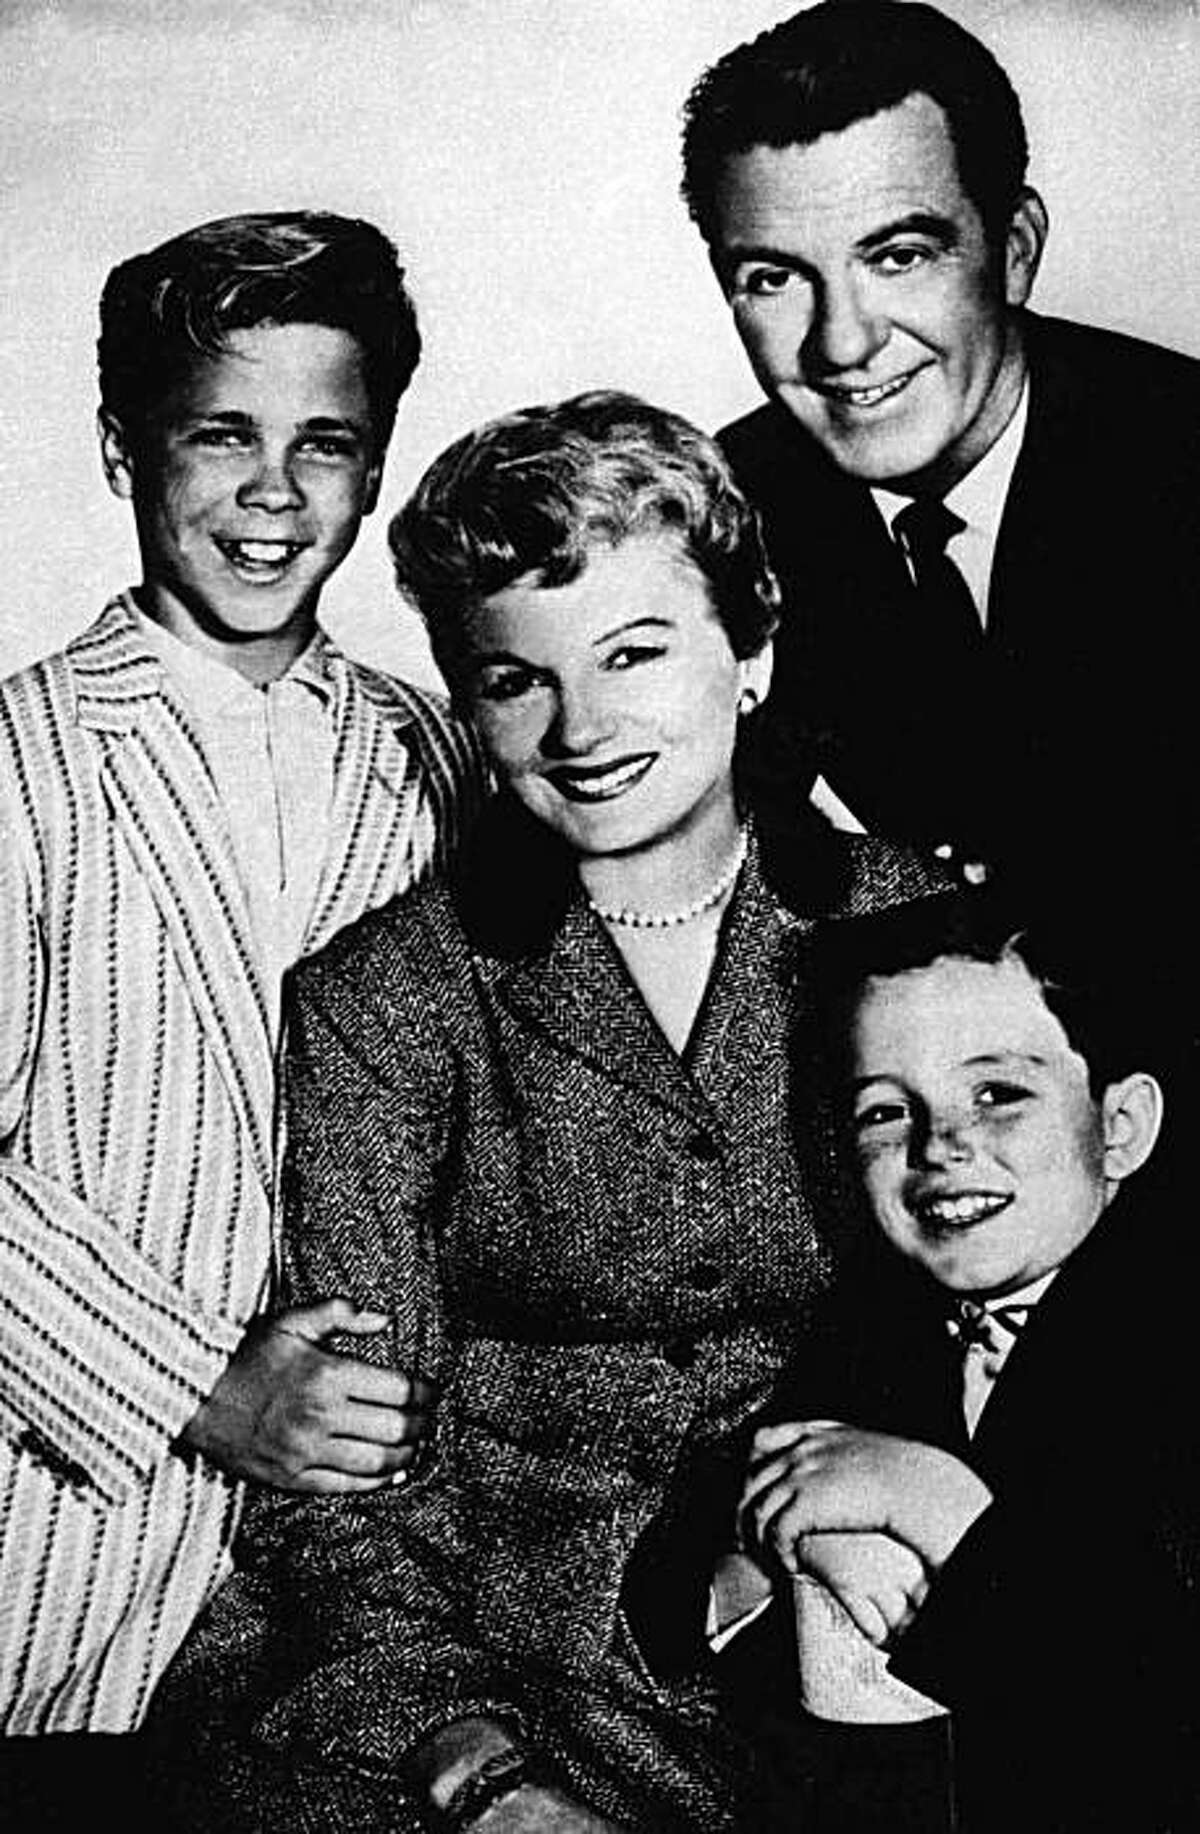 Mrs. Cleaver was definitely the most patient mom ever in